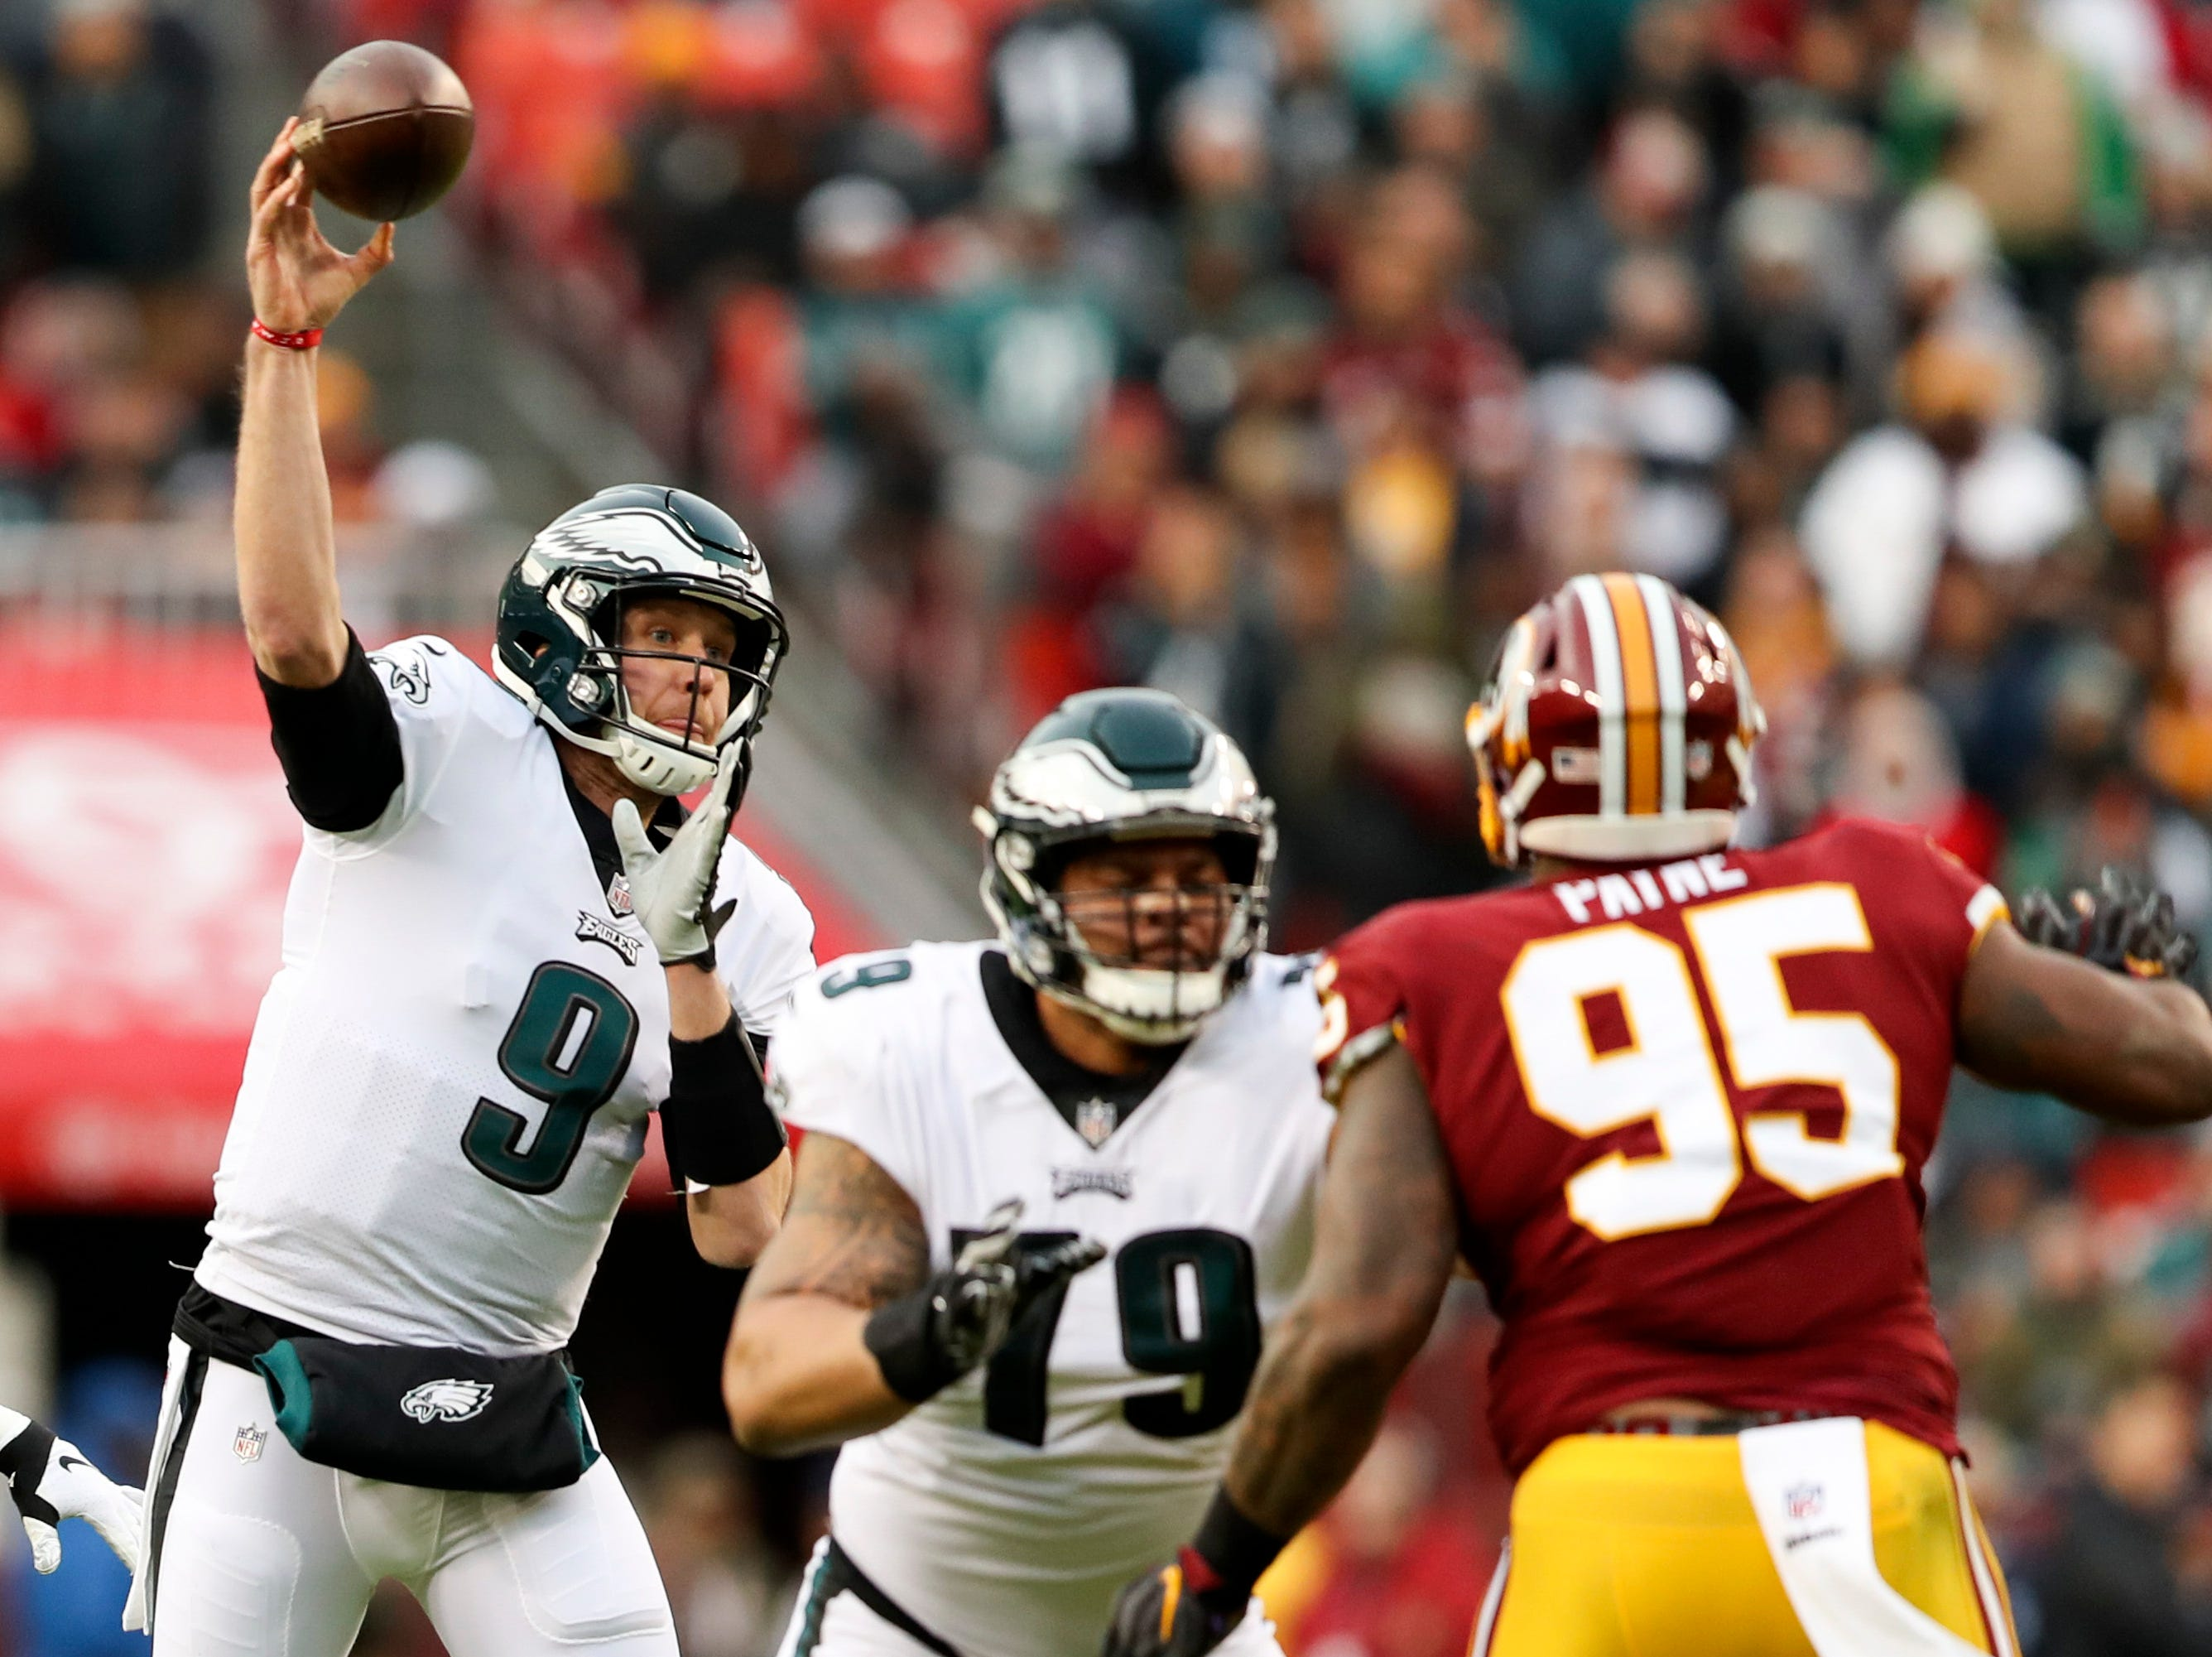 Philadelphia Eagles quarterback Nick Foles (9) passes the ball during the first half of an NFL football game against the Washington Redskins, Sunday, Dec. 30, 2018 in Landover, Md. (AP Photo/Andrew Harnik)